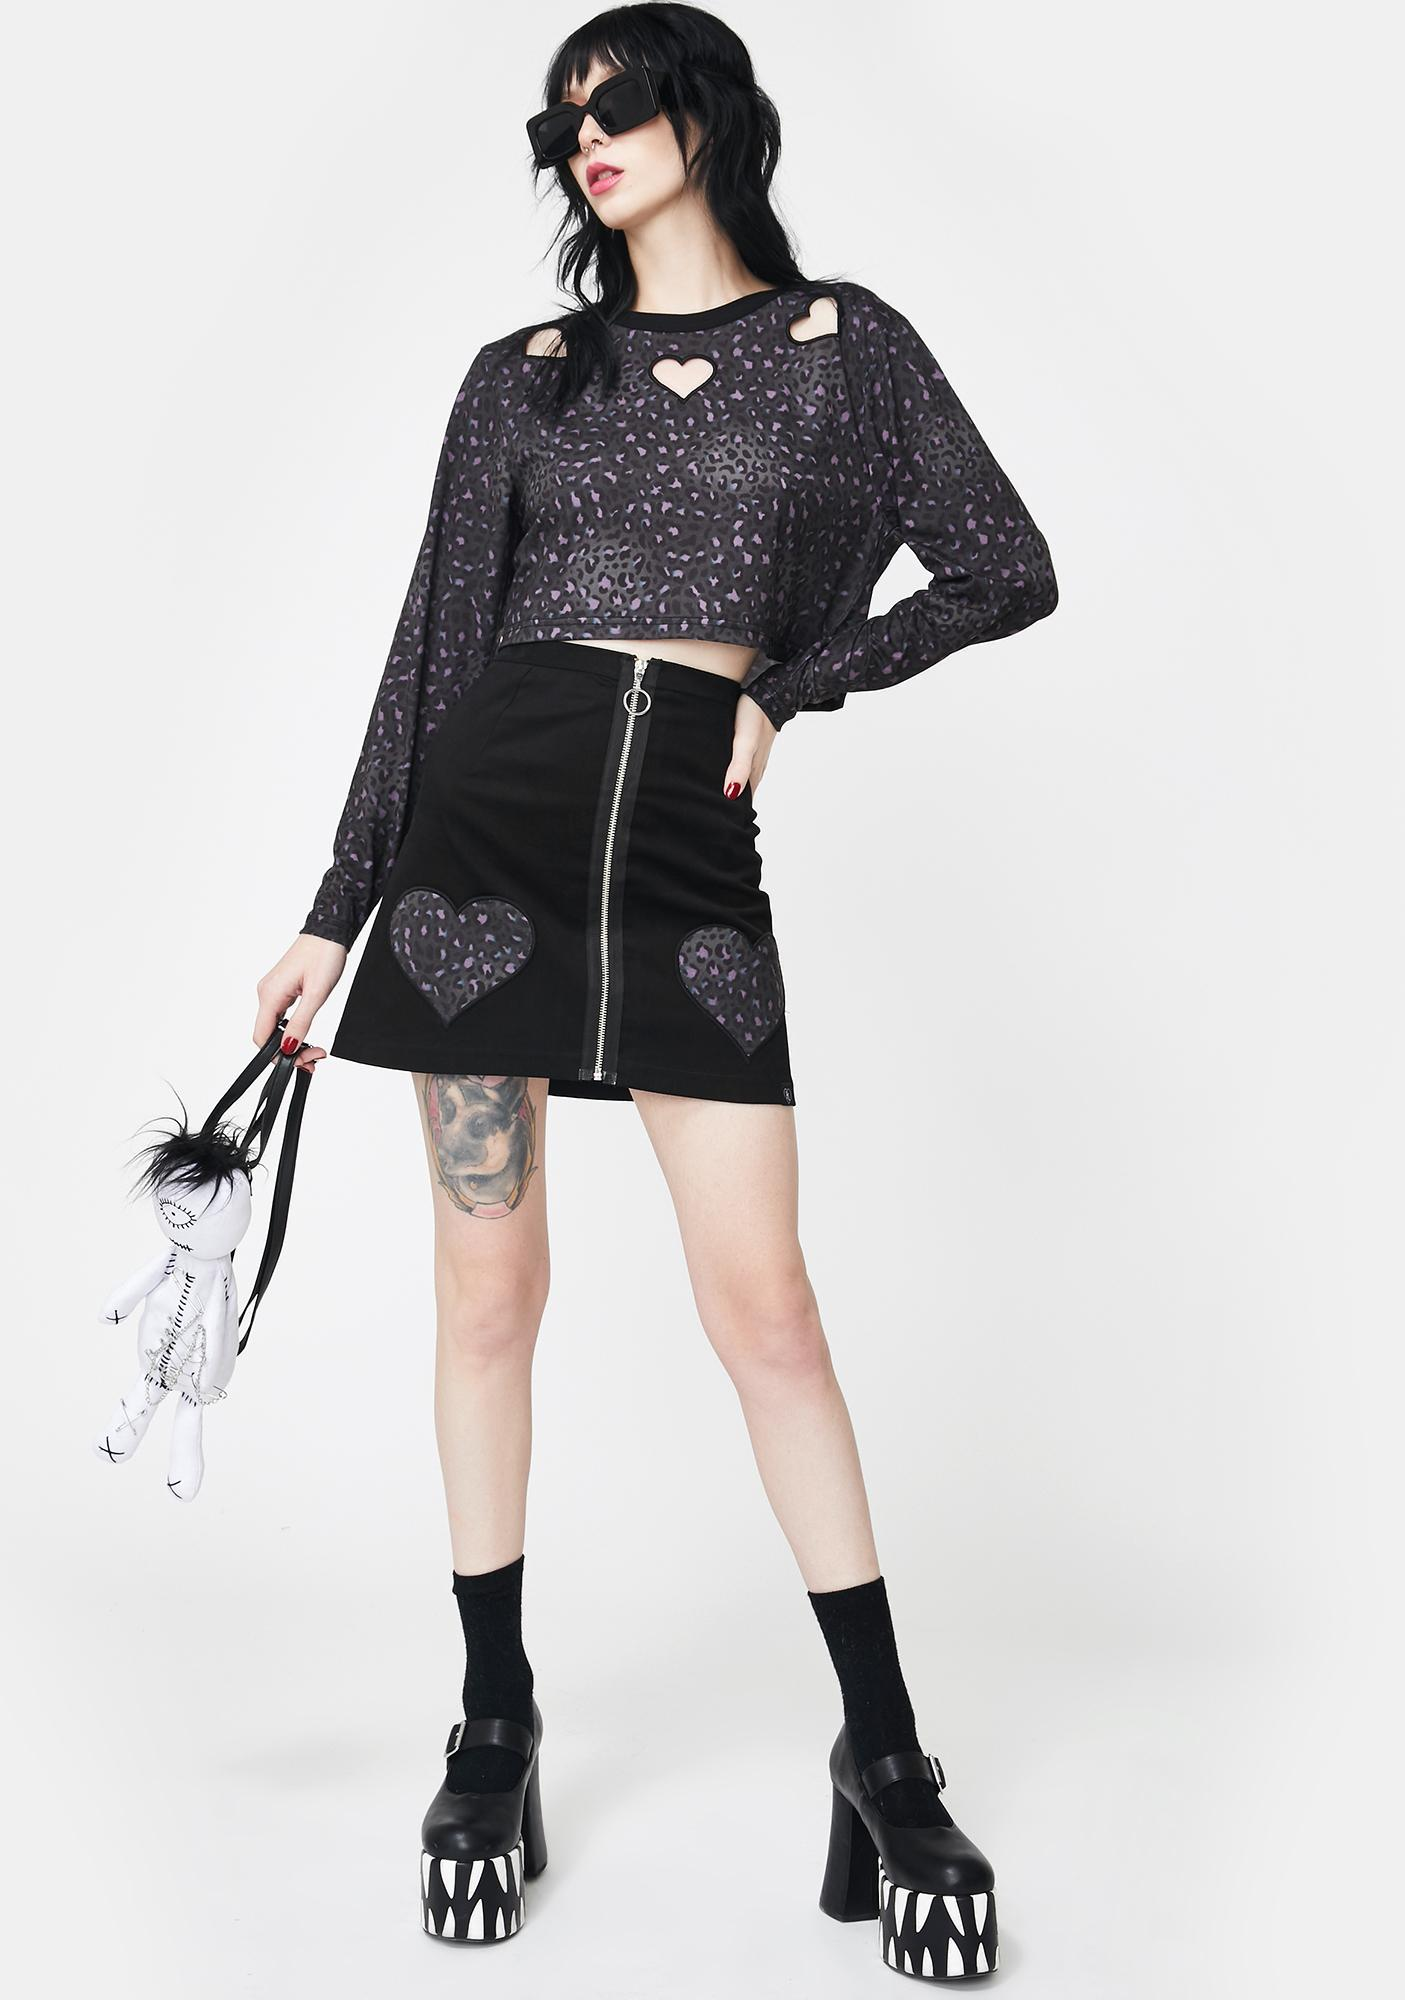 Fearless Illustration Cheetah Heart Mini Skirt